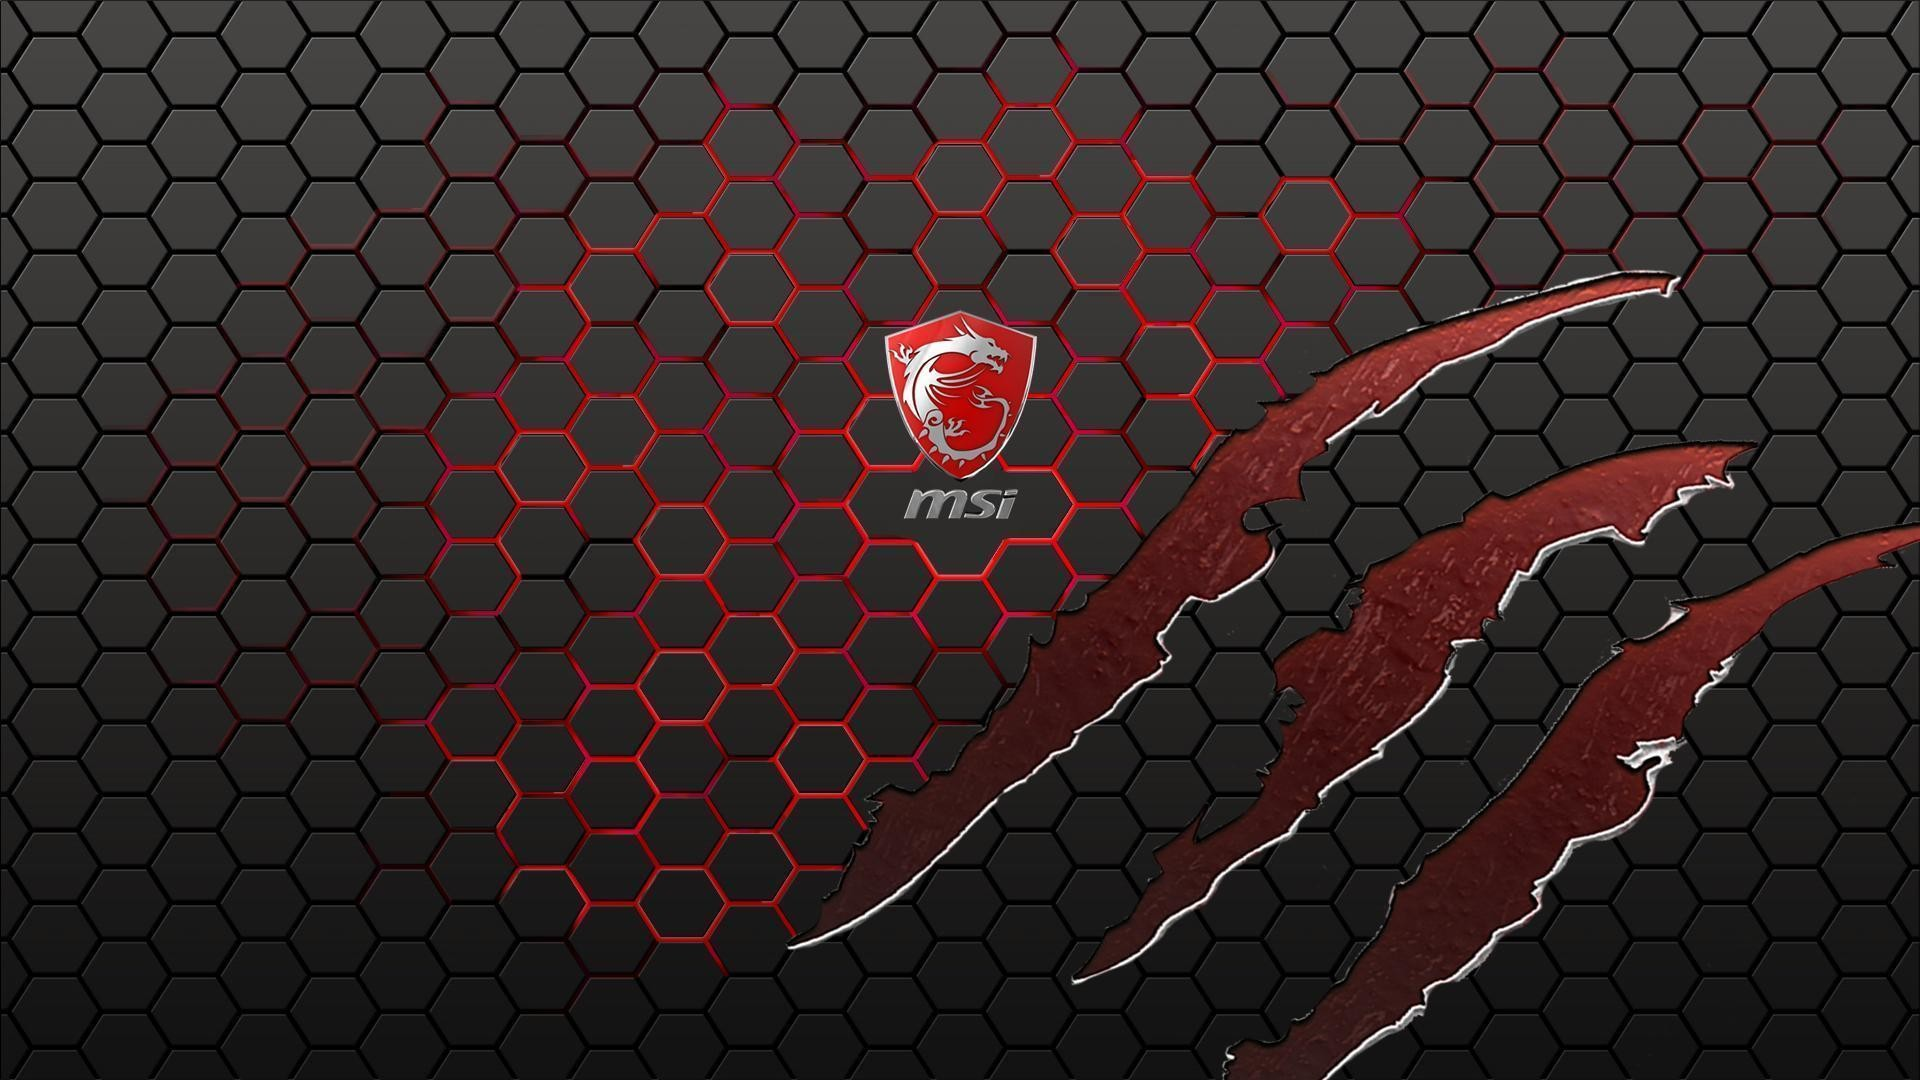 MSi Wallpaper HD